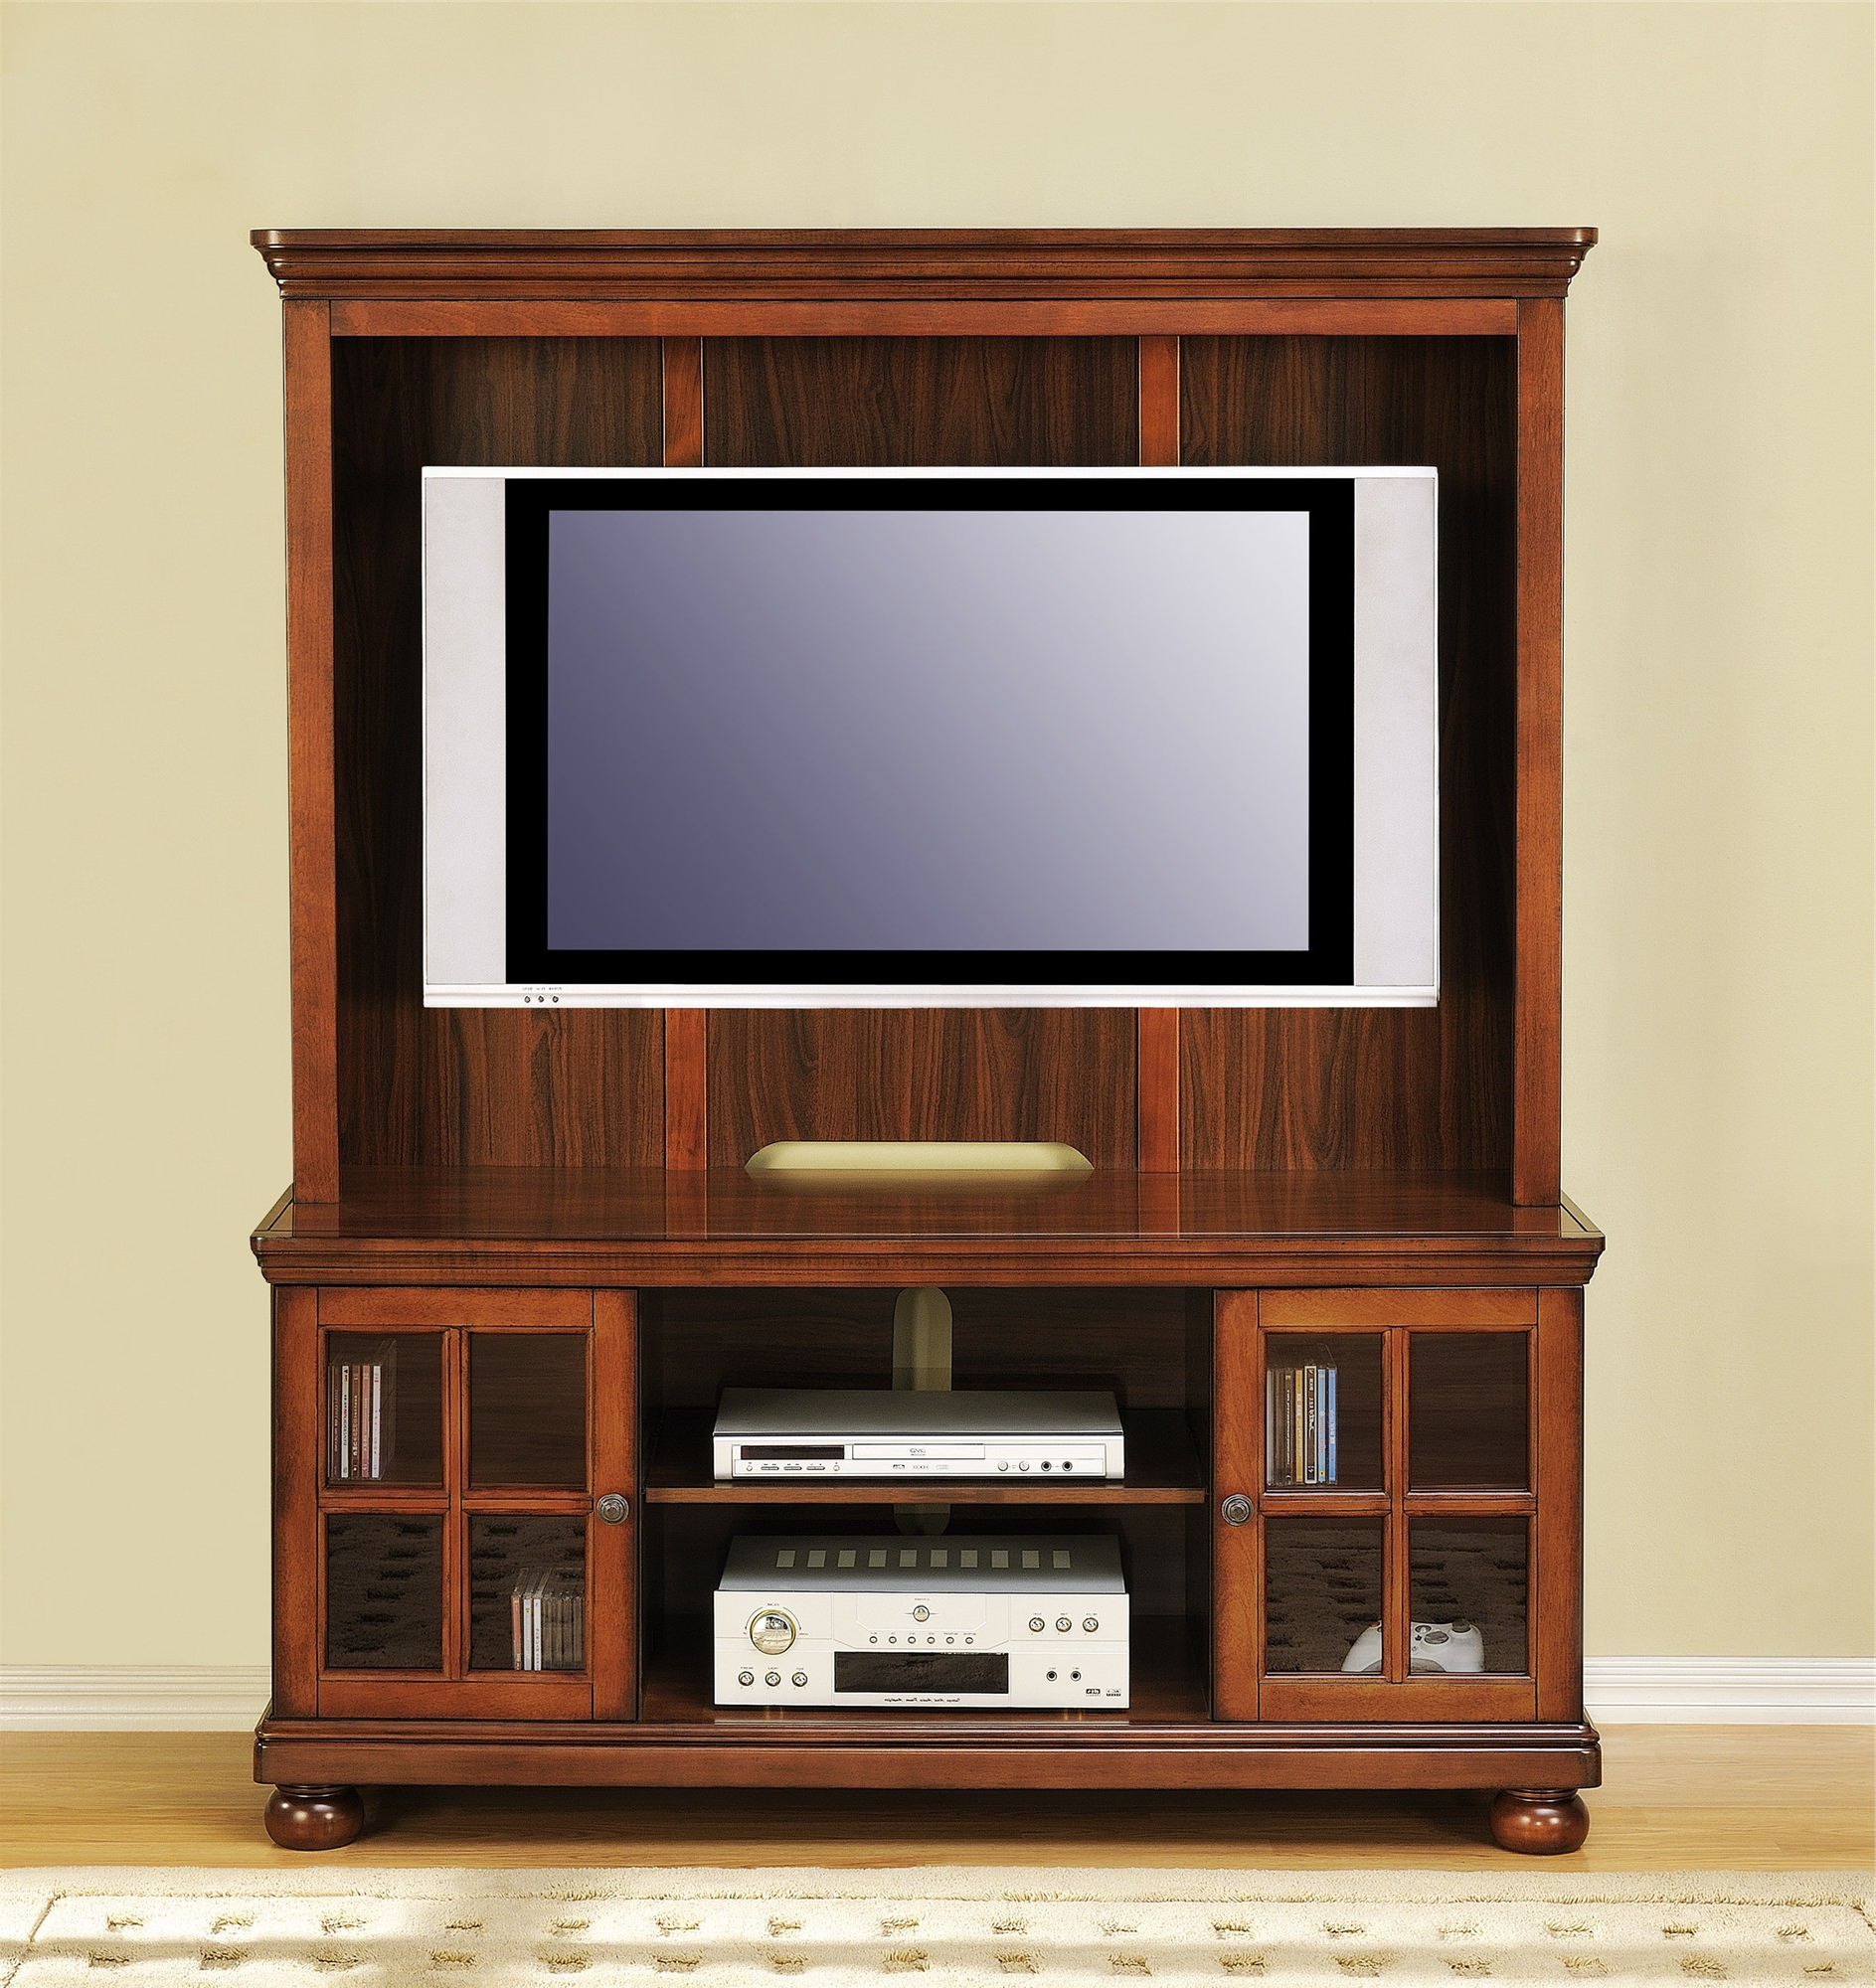 Recent Wooden Tv Stands For Flat Screens Intended For Tv Stand Design Ideas Costco Stands For Flat Screens Home Furniture (Gallery 2 of 20)